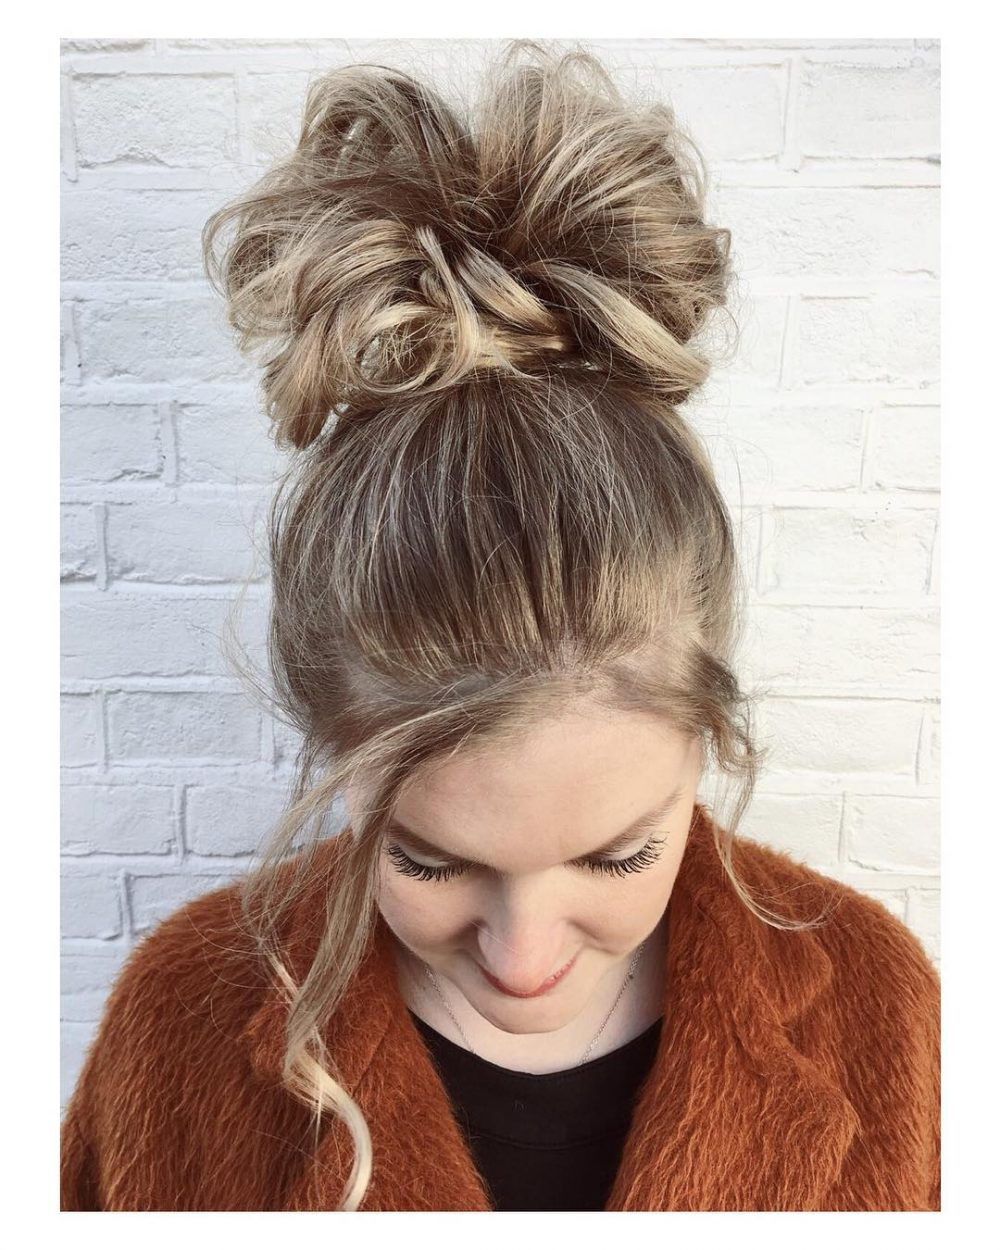 Best ideas about Easy Up Hairstyles . Save or Pin 32 Cute & Easy Updos for Long Hair You Have to See for 2018 Now.